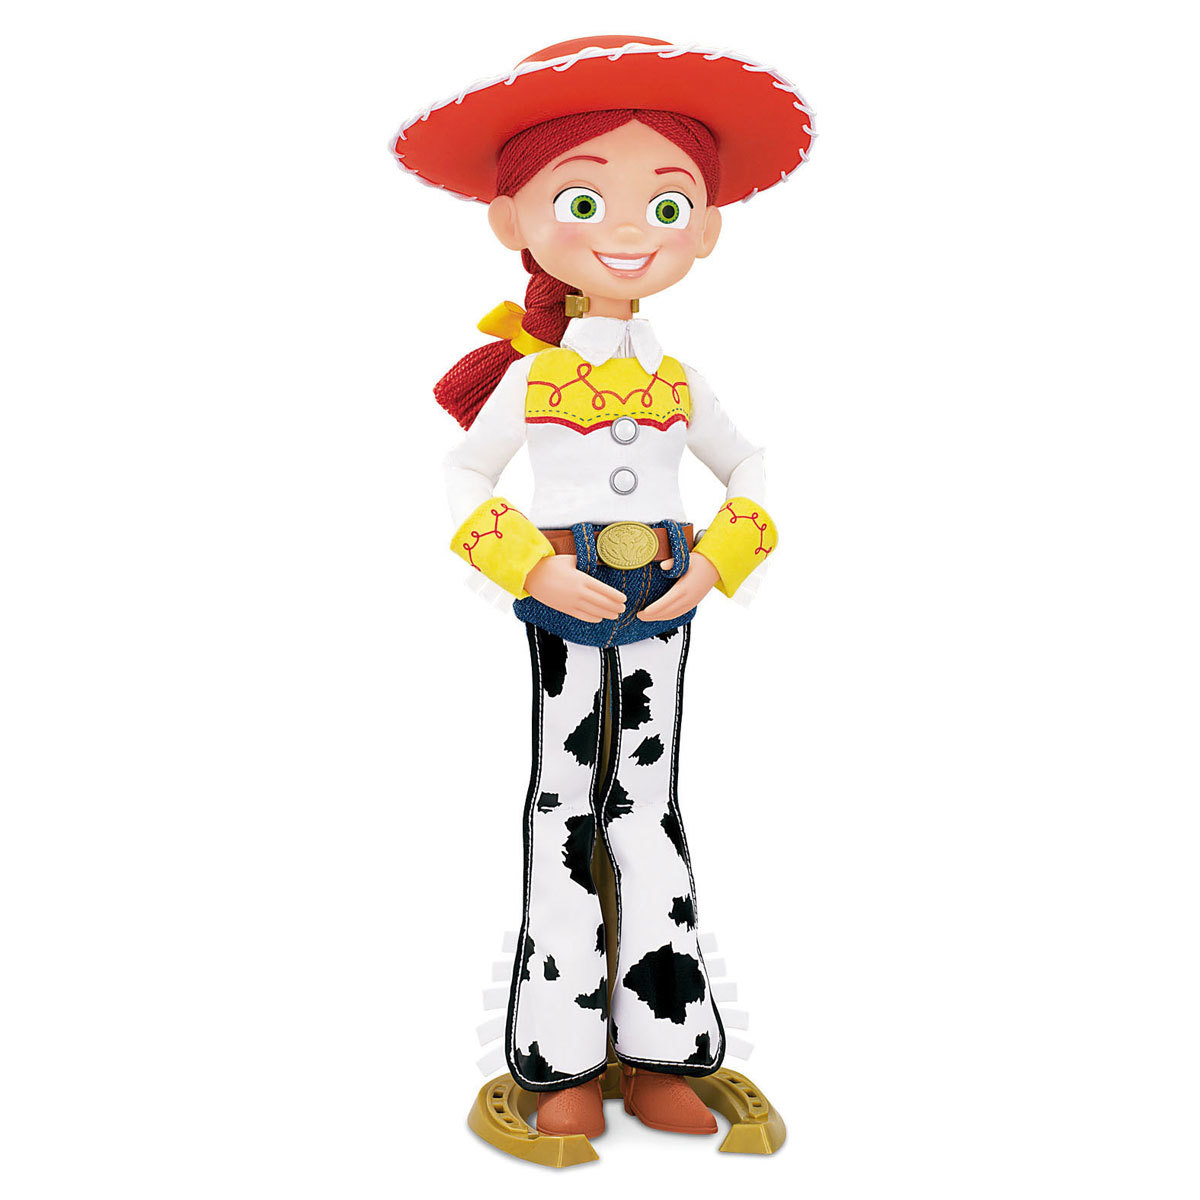 Disney Pixar Toy Story 4 Collection Figure - Jessie The Yodelling Cowgirl